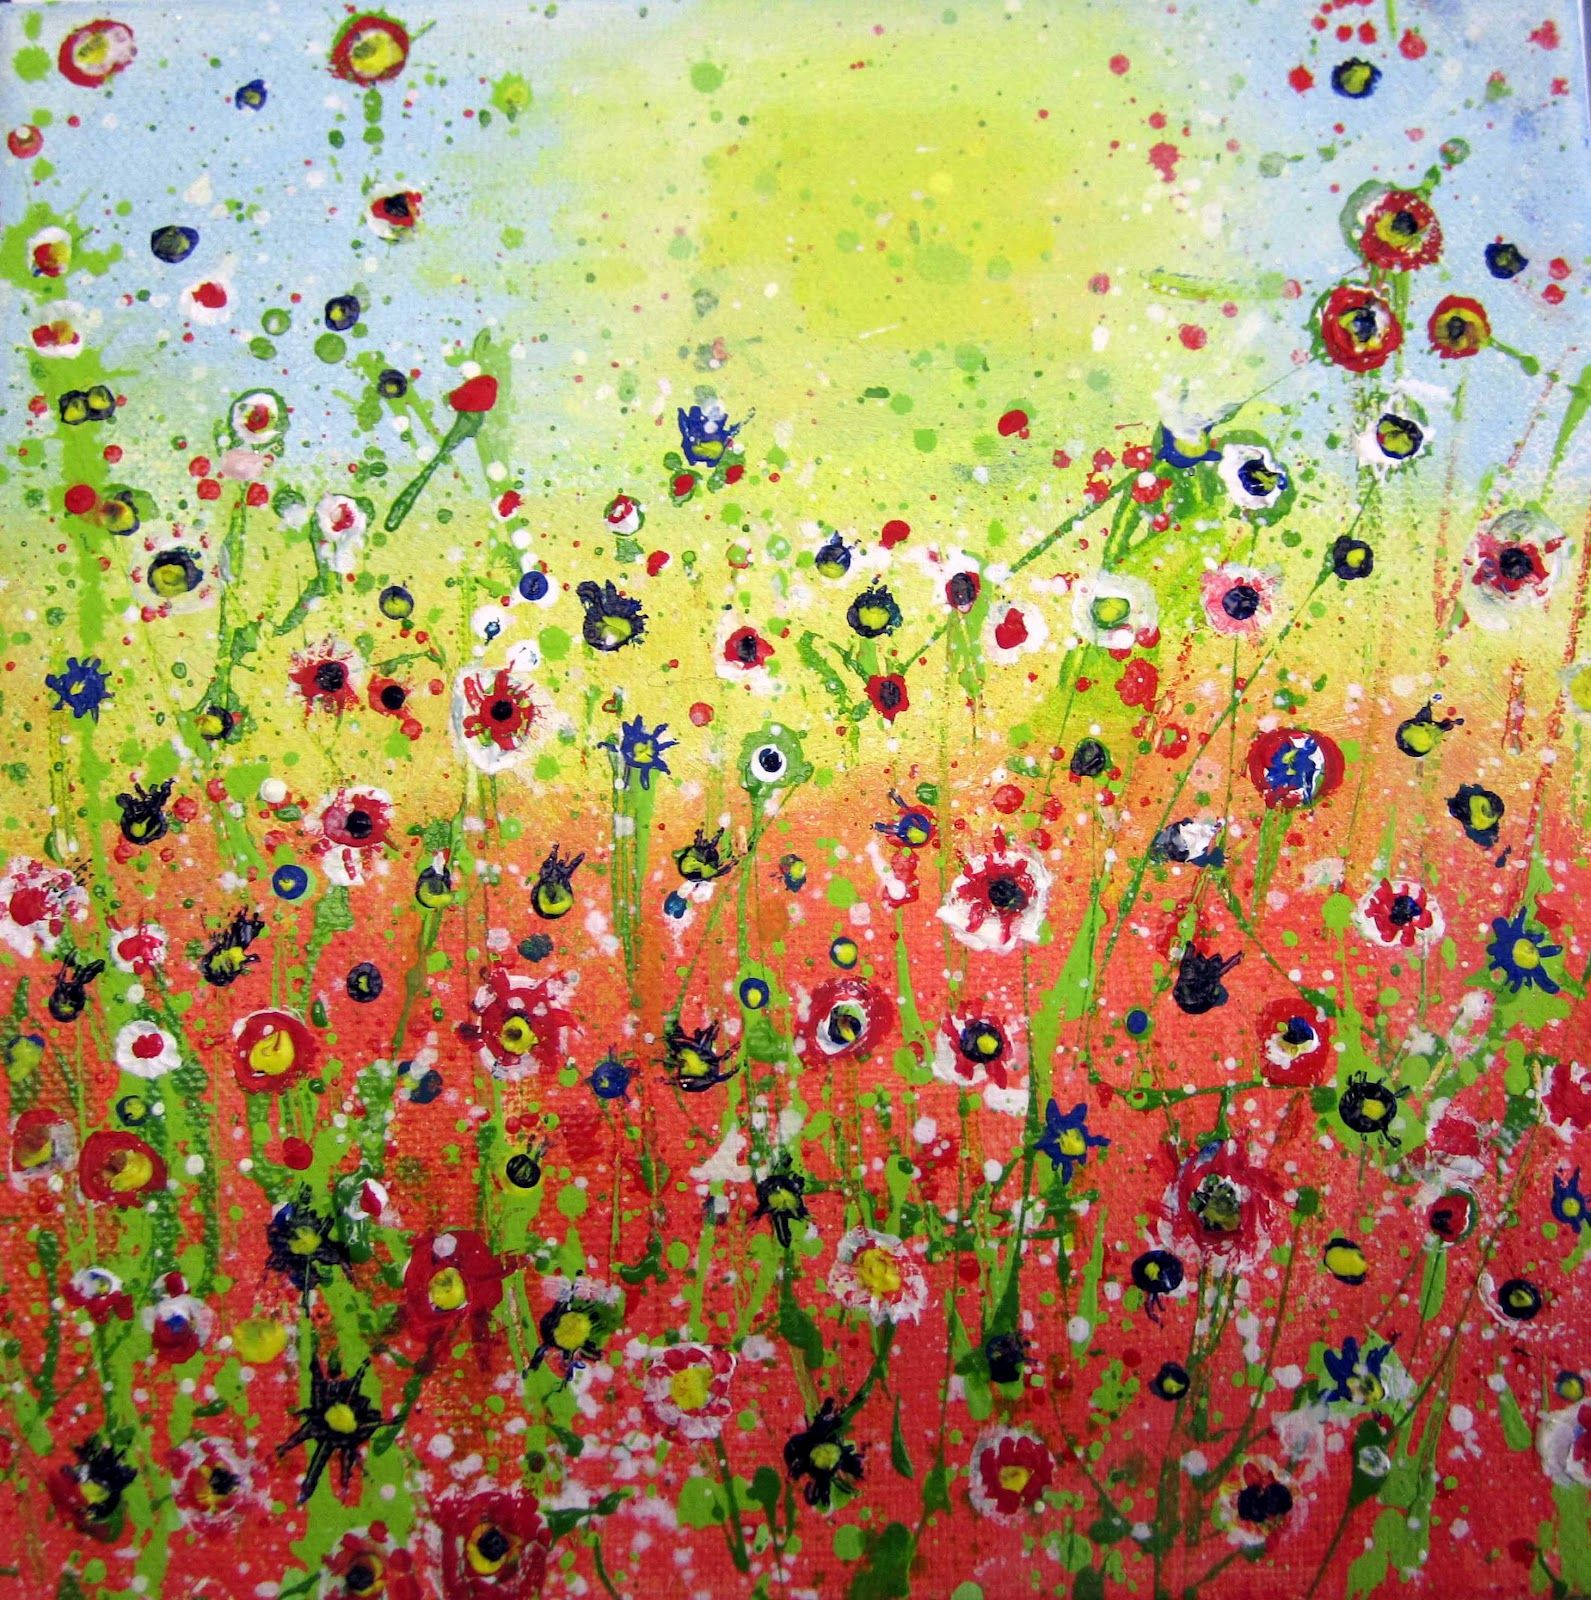 Acrylic painting ideas for beginners her fabulous art for How to paint with acrylics for beginners